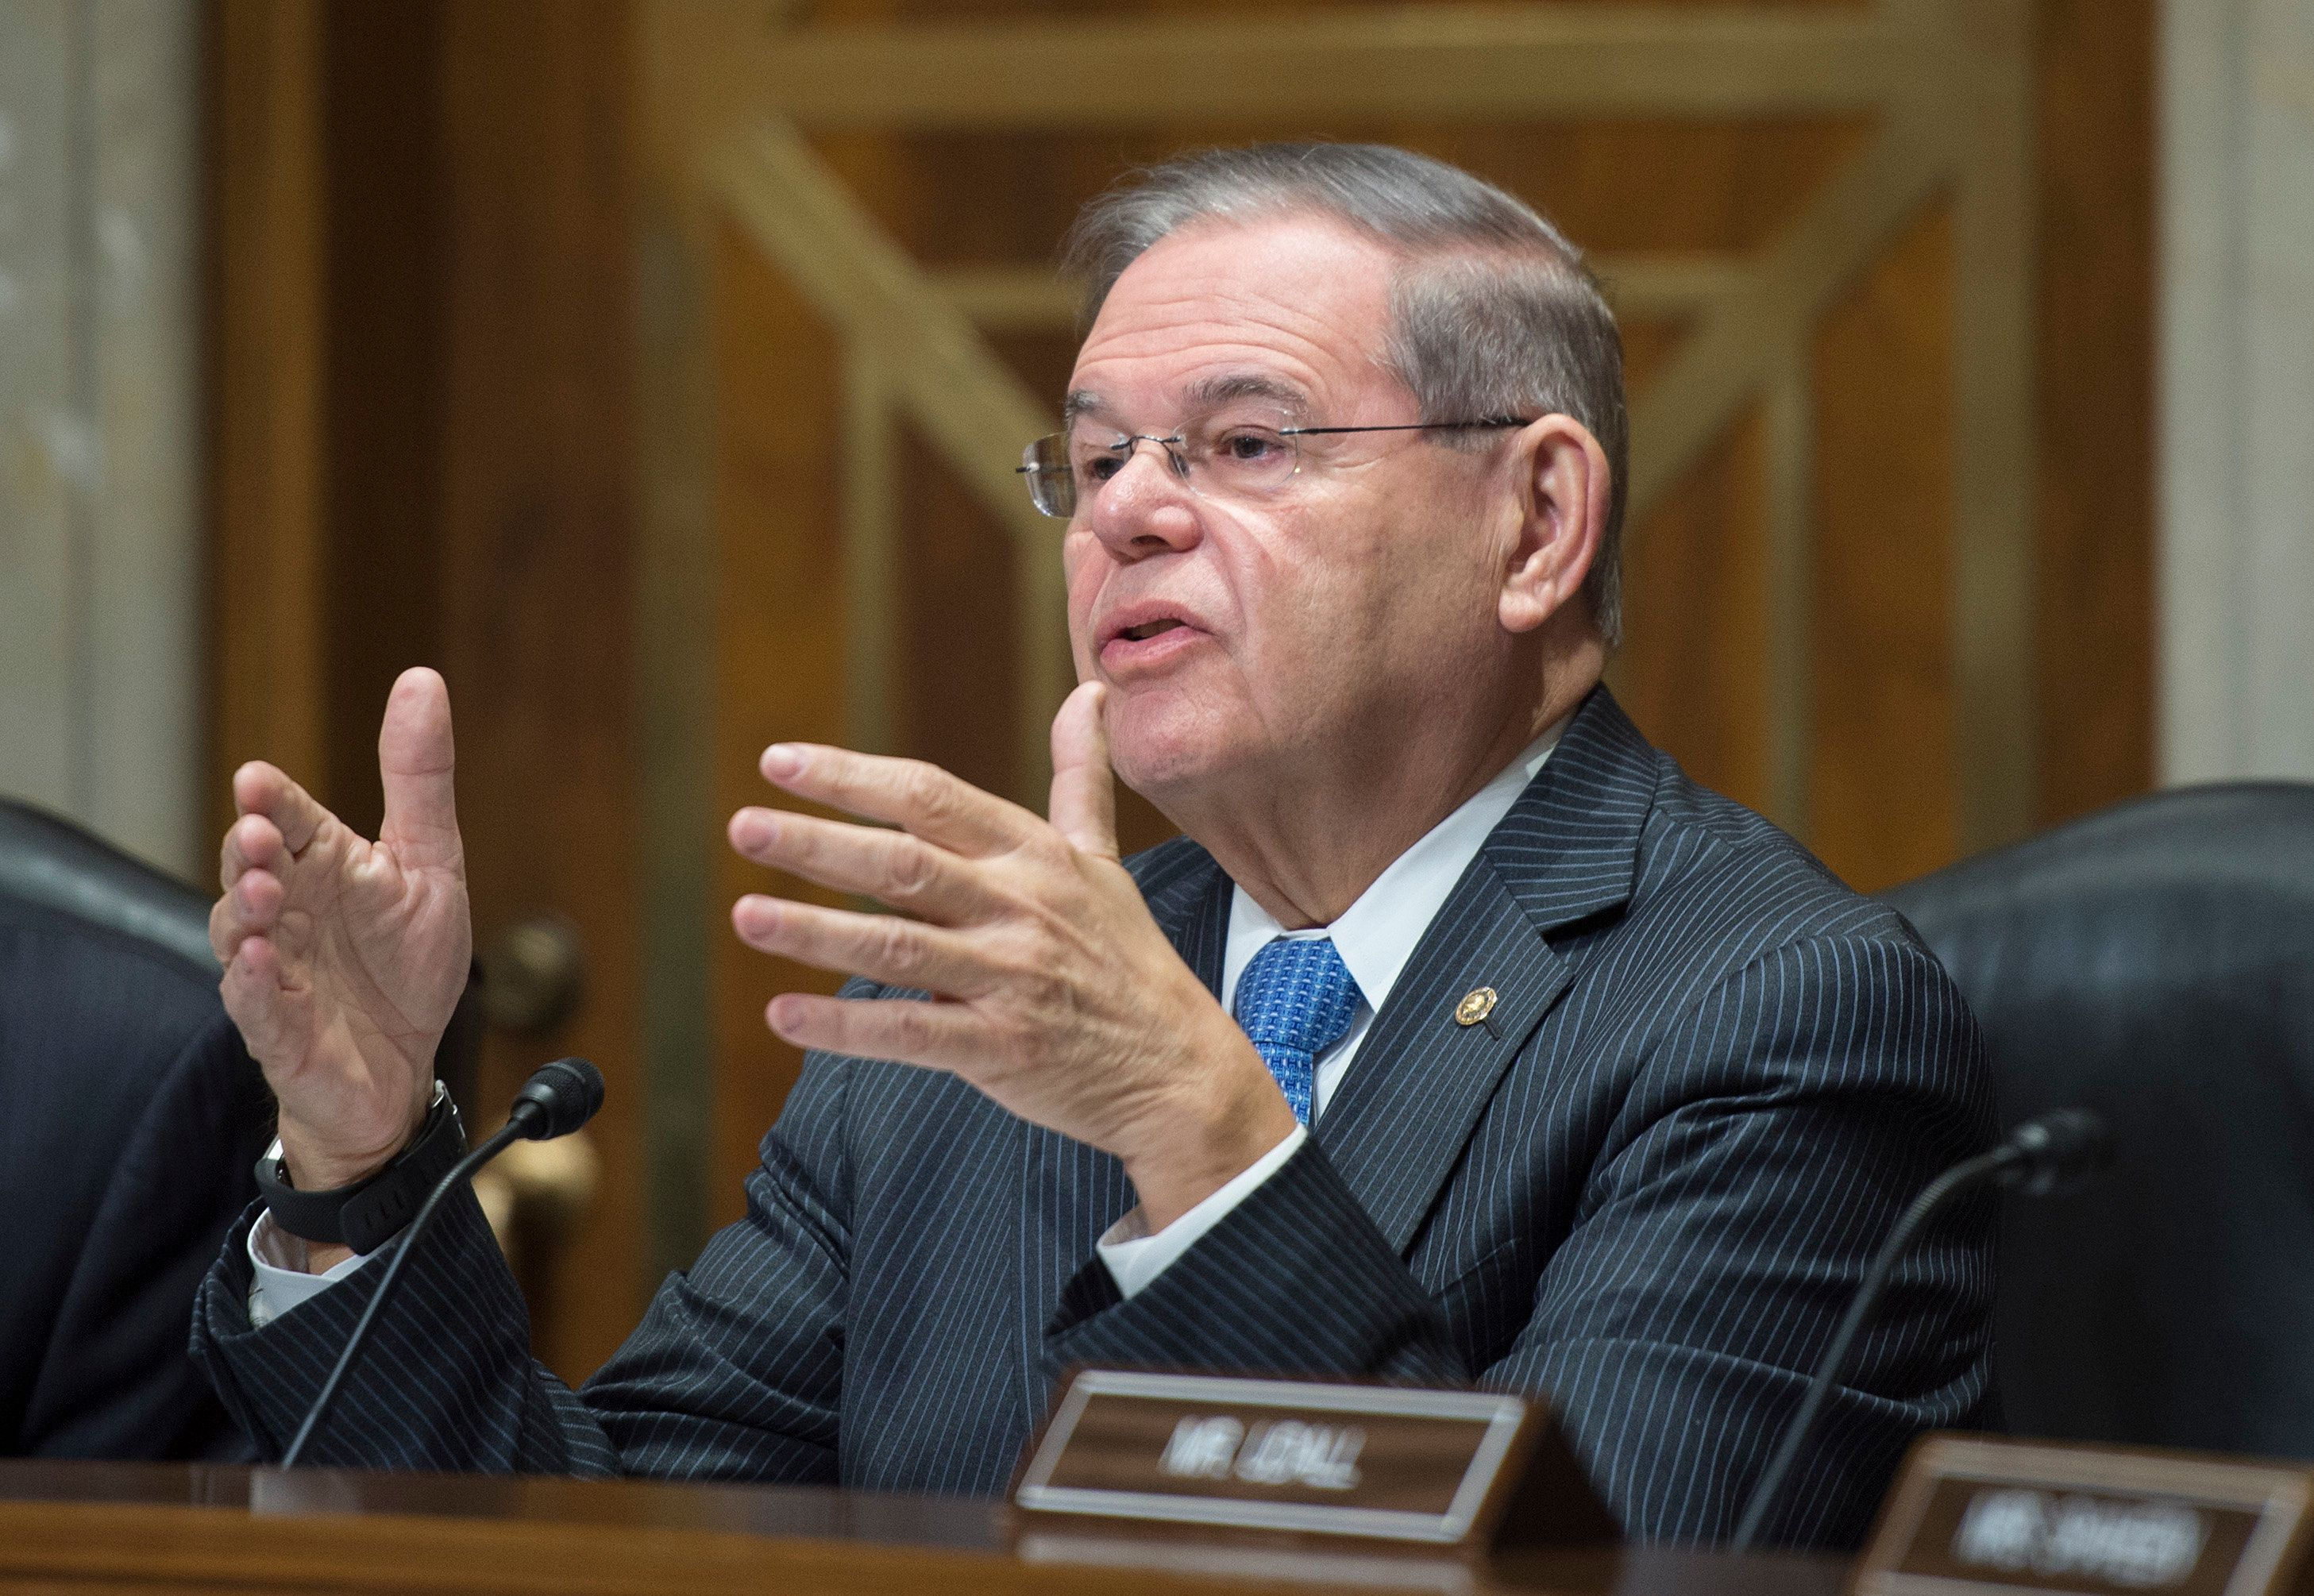 Bob Menendez (D-NJ) speaks during a foreign relations hearing in Washington, DC on January 9, 2018, on the attacks on US diplomats in Cuba. The United States is to review how the State Department has responded to alleged attacks on the health of 24 diplomats and family members in Havana, officials said Tuesday. The State Department had come under renewed pressure to form an 'accountability review board' as the mystery surrounding the brain trauma suffered by the envoys has only deepened. Initially officials suggested the Americans had been targeted by some sort of acoustic weapon, although news reports now say the FBI has been unable to confirm this theory.  / AFP PHOTO / Andrew CABALLERO-REYNOLDS        (Photo credit should read ANDREW CABALLERO-REYNOLDS/AFP/Getty Images)